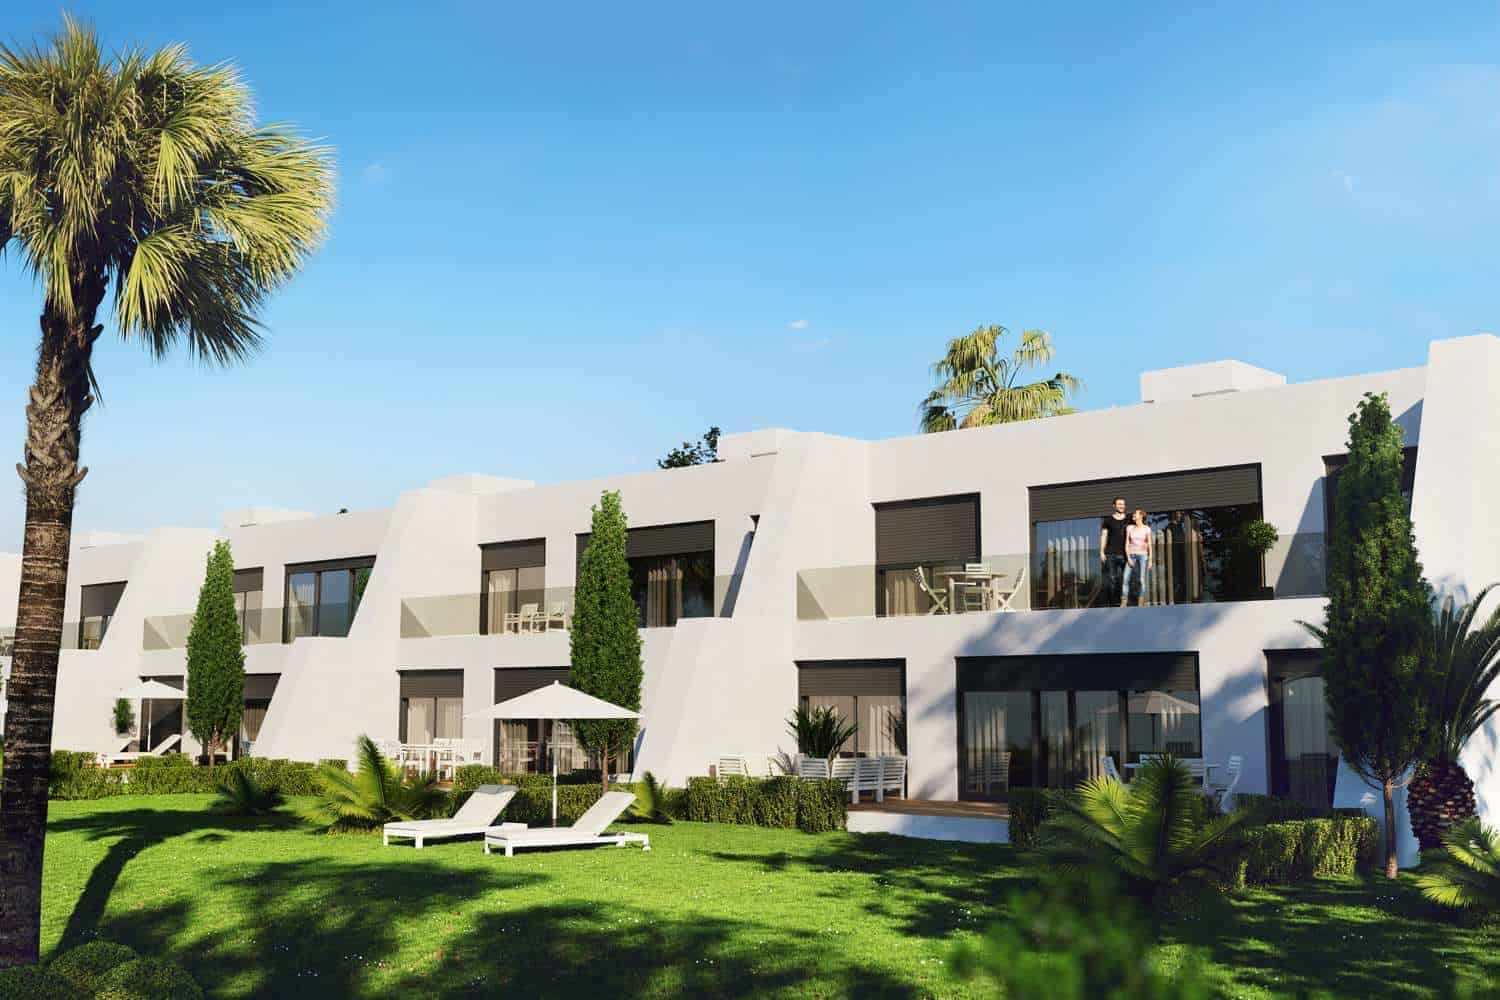 Previous Next Listing Features Attachments Video Location Contact 12 Apartments The Lofts In Mar Menor Golf Resort